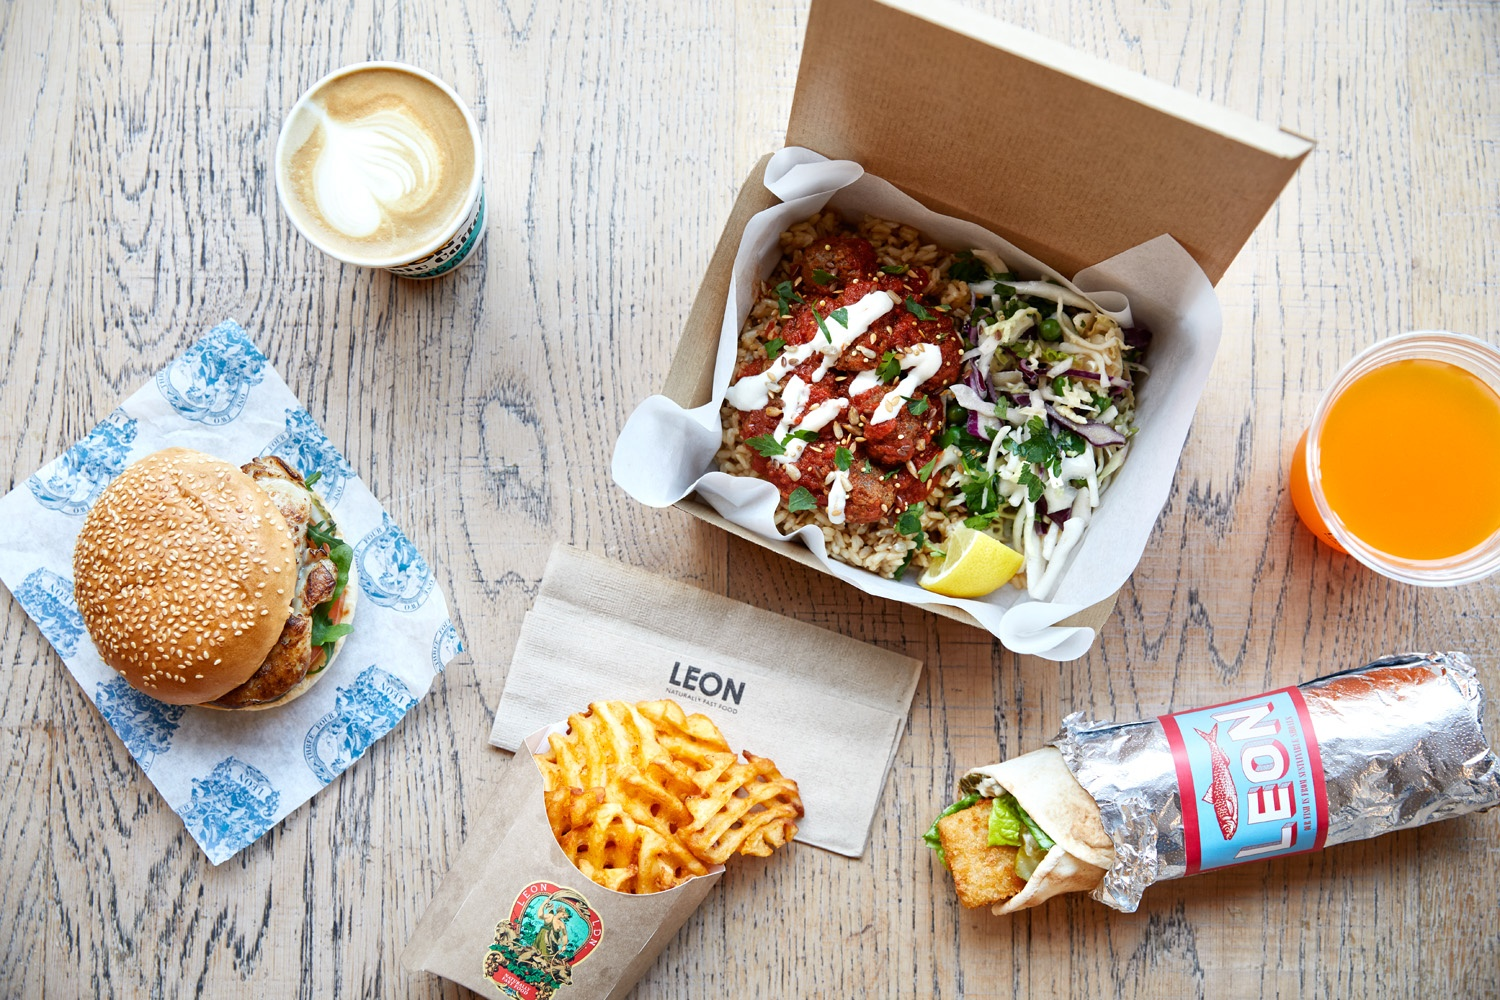 City Pantry - gluten-free restaurants in London